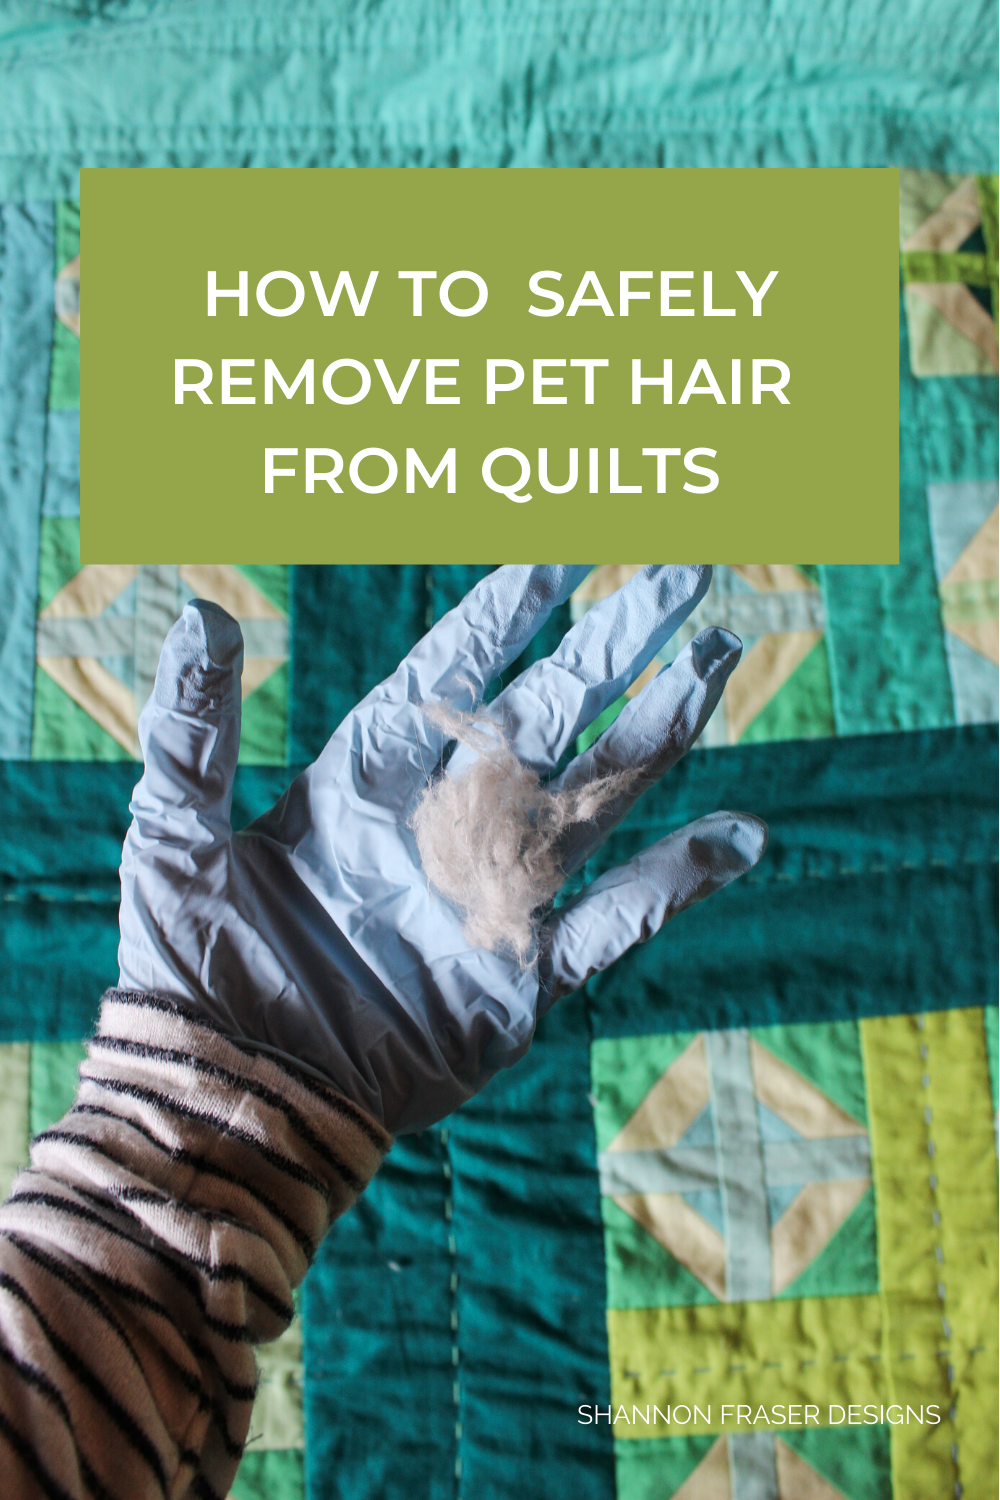 Hand with blue medical rubber glove holding a ball of pet fur pulled from a quilt | #1 Tool to safely remove pet hair from quilts | Shannon Fraser Designs #quilting